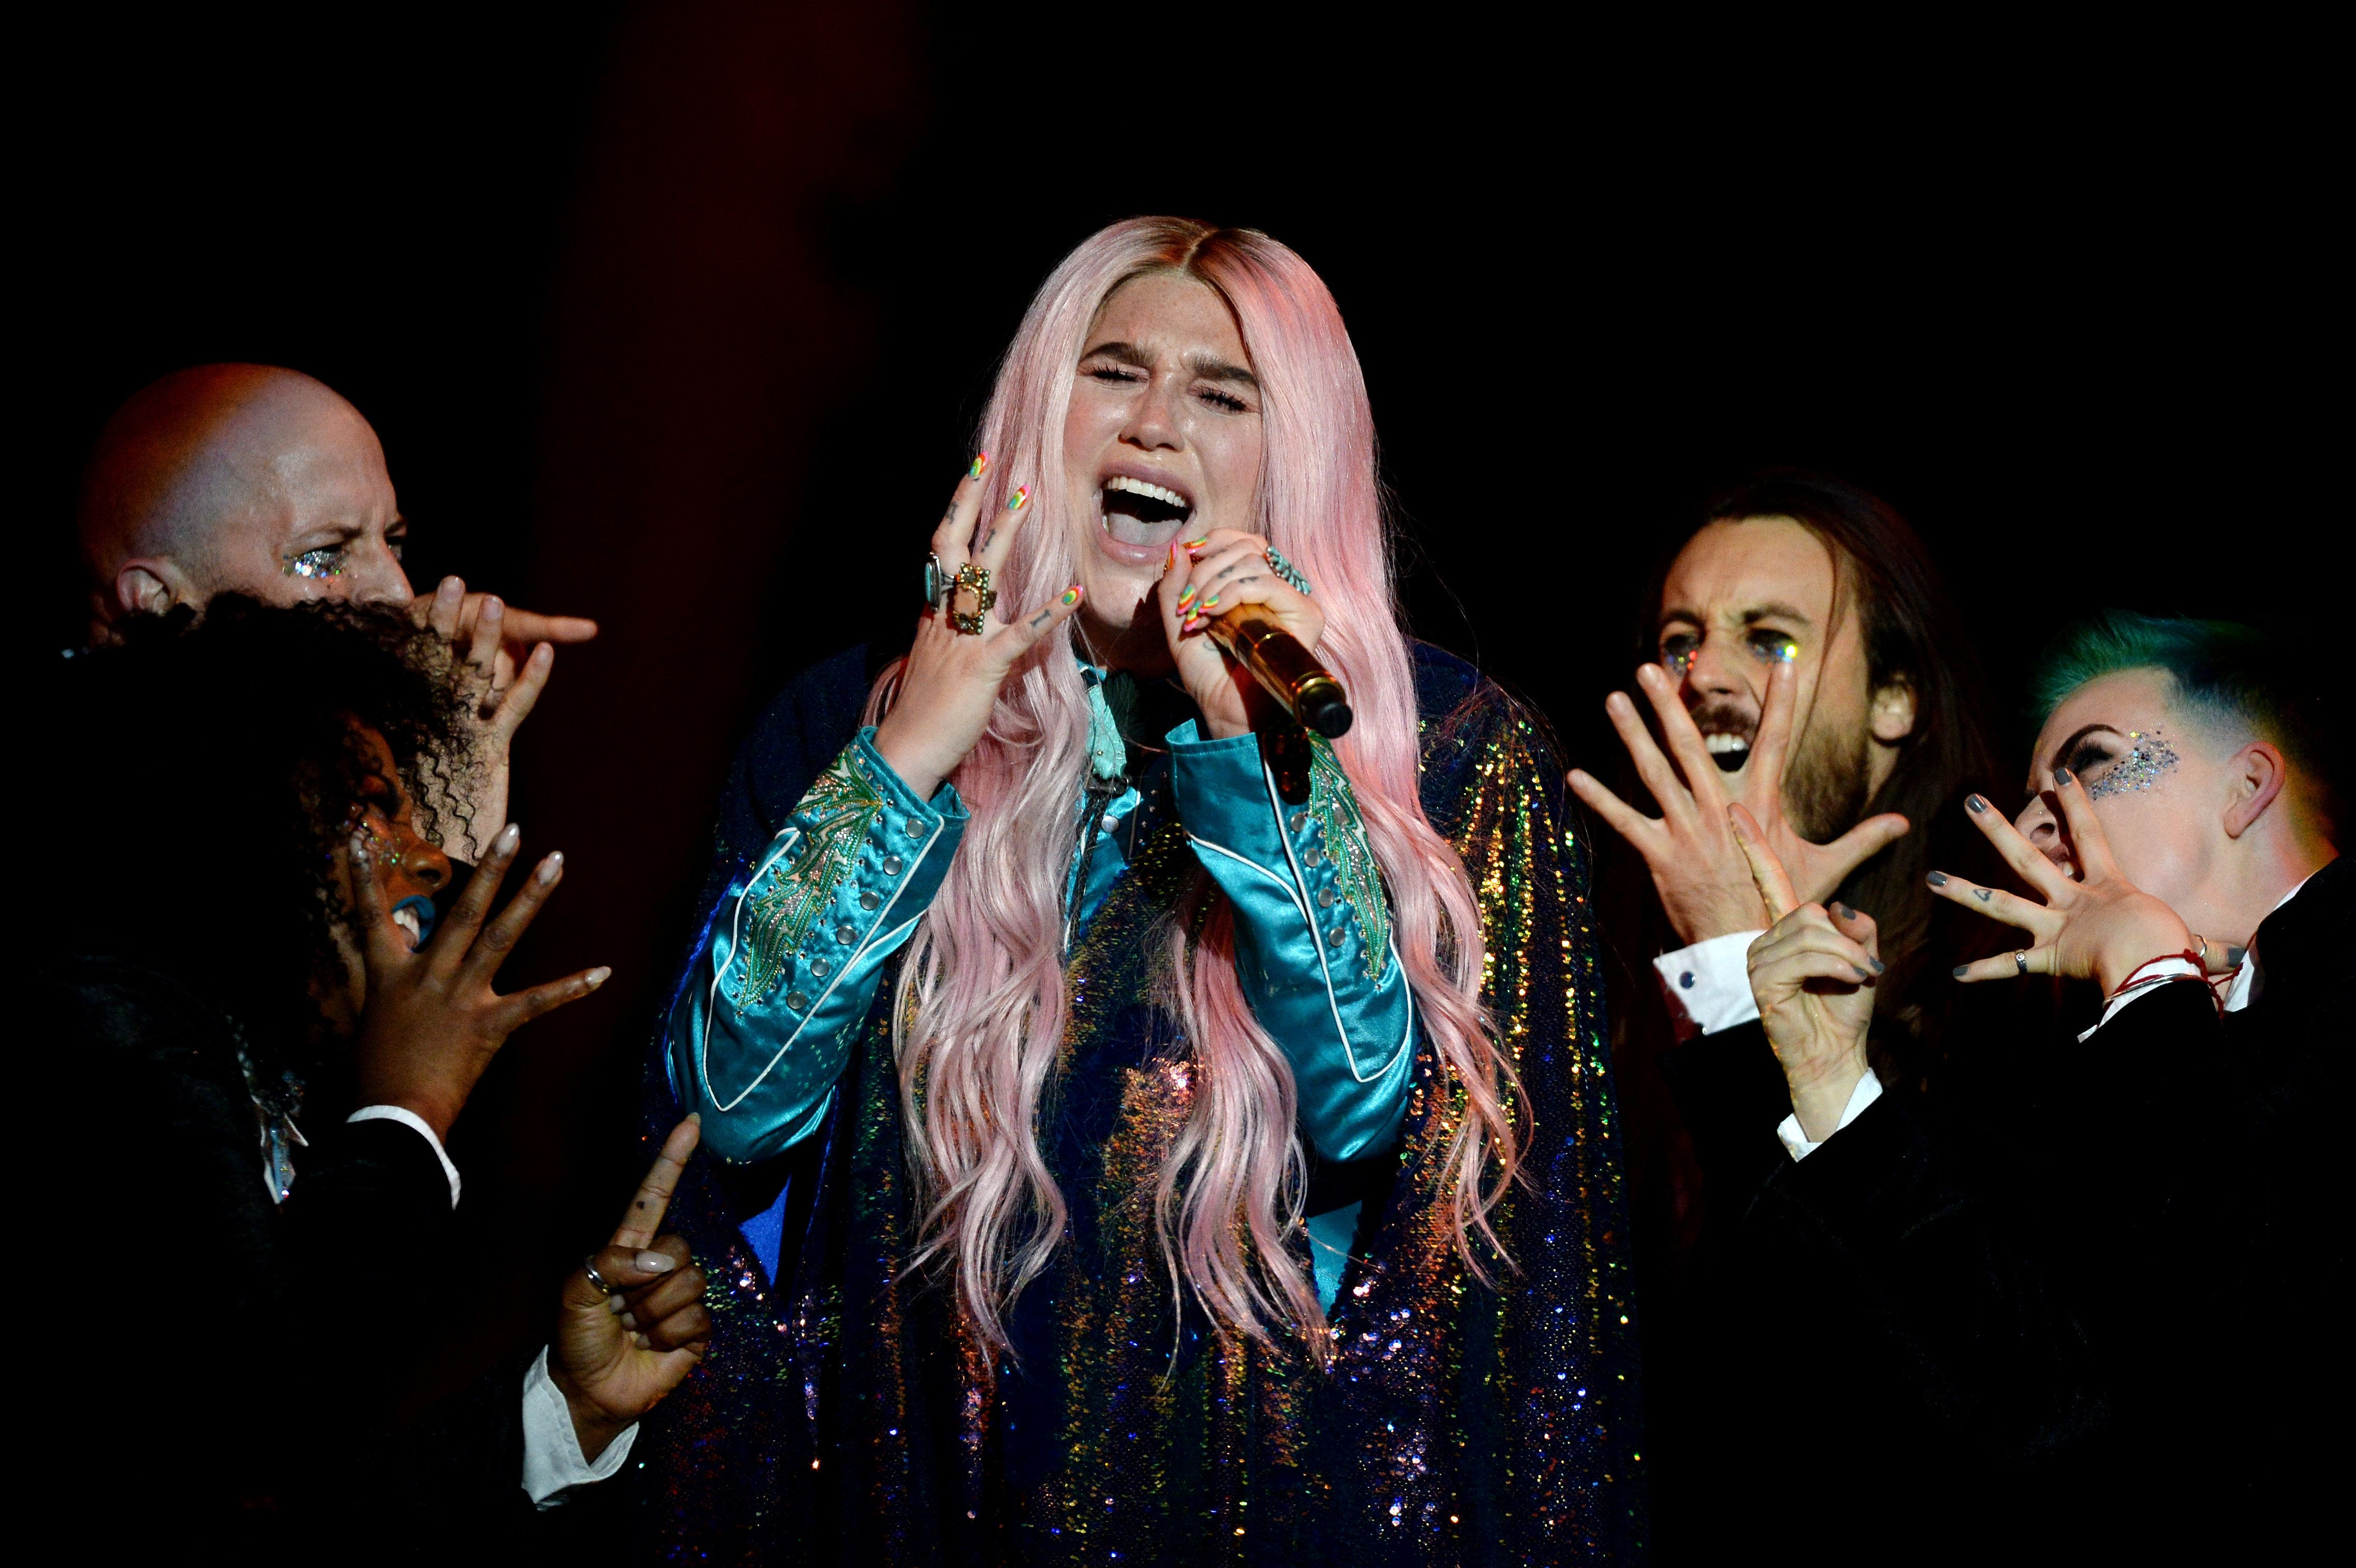 Kesha Nominated For First Grammys, Years After Accusing Producer Of Rape